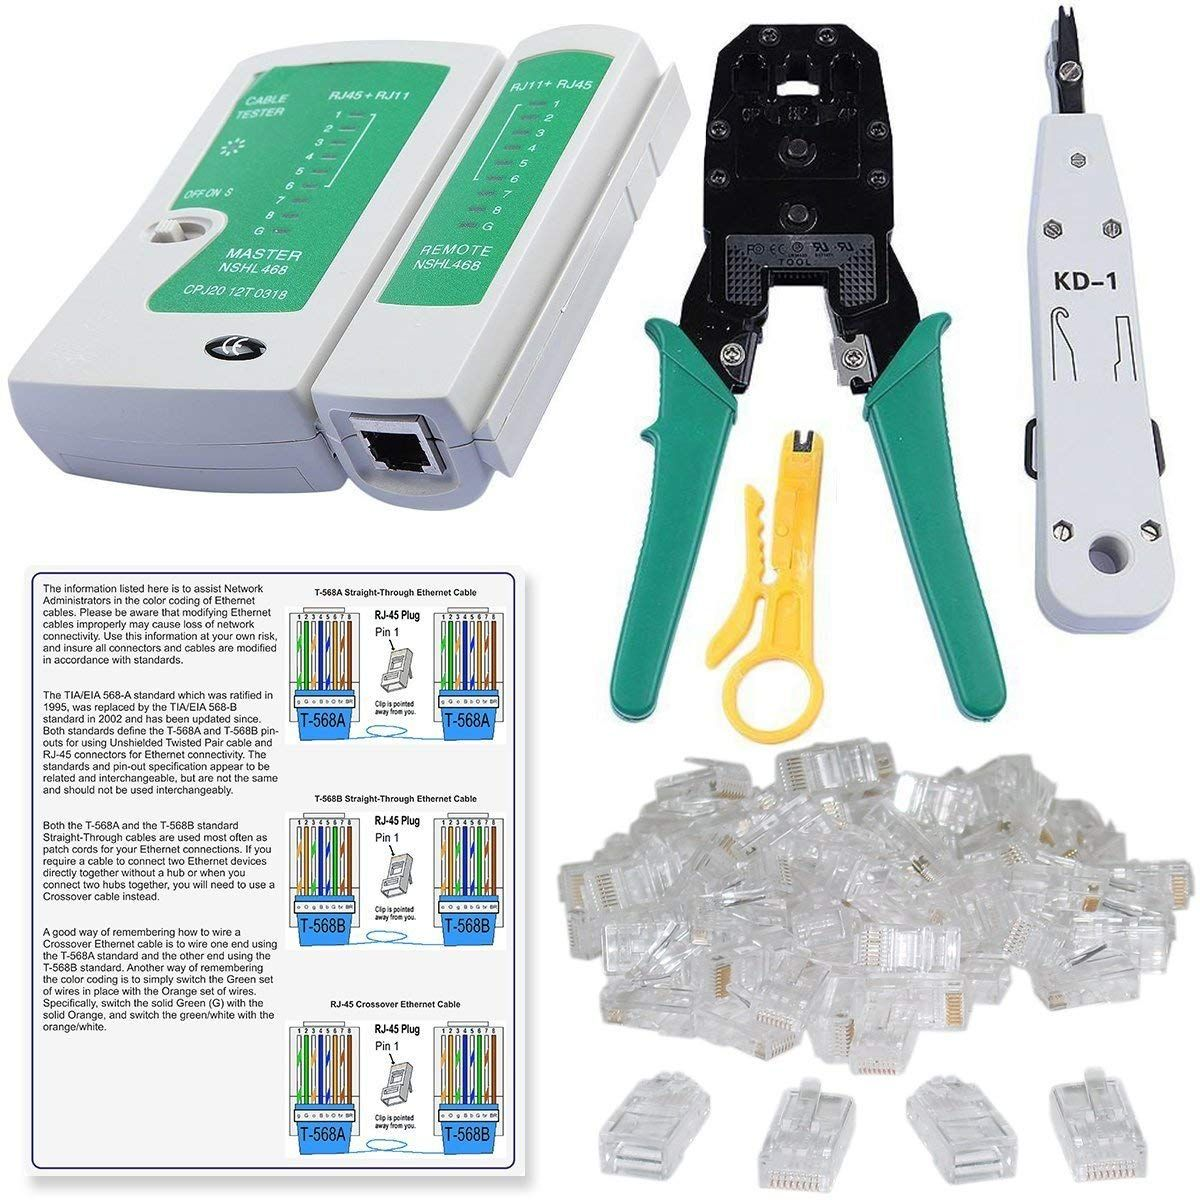 hight resolution of shopee rj45 rj11 crimping tool kd 1 professional punch down lan cable tester ethernet colour coding and 20 pieces connectors combo set